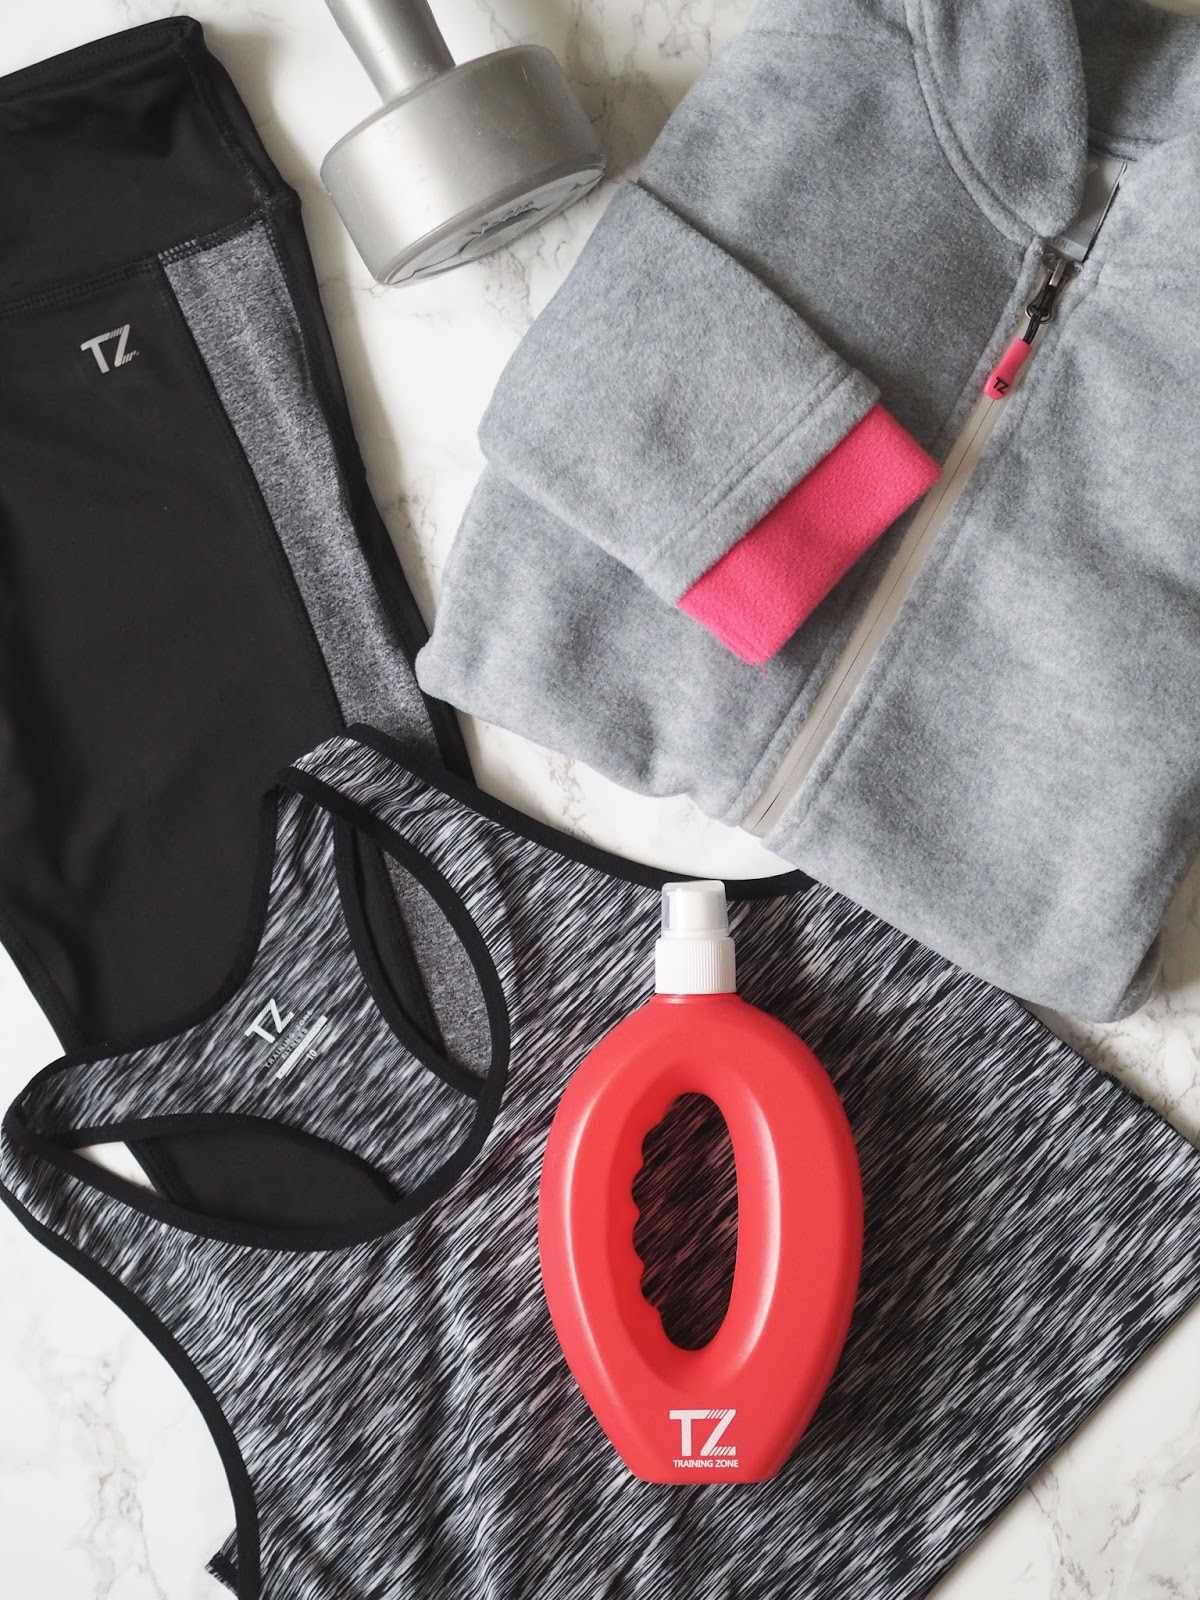 M&Co training zone gym fitness activewear Priceless Life of Mine Over 40 lifestyle blog